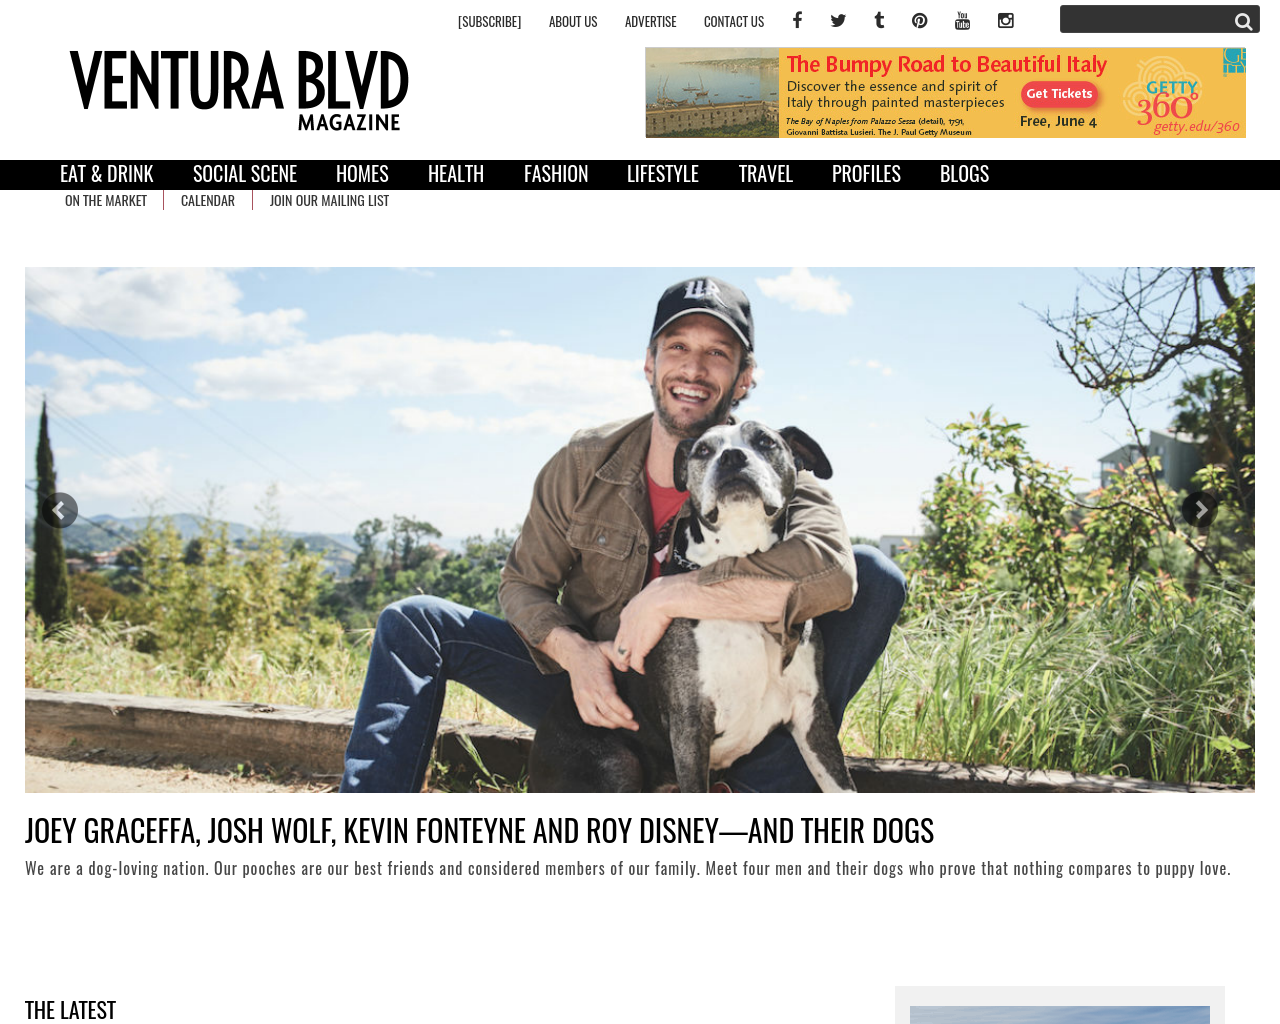 VENTURA-BLVD-MAGAZINE-Advertising-Reviews-Pricing